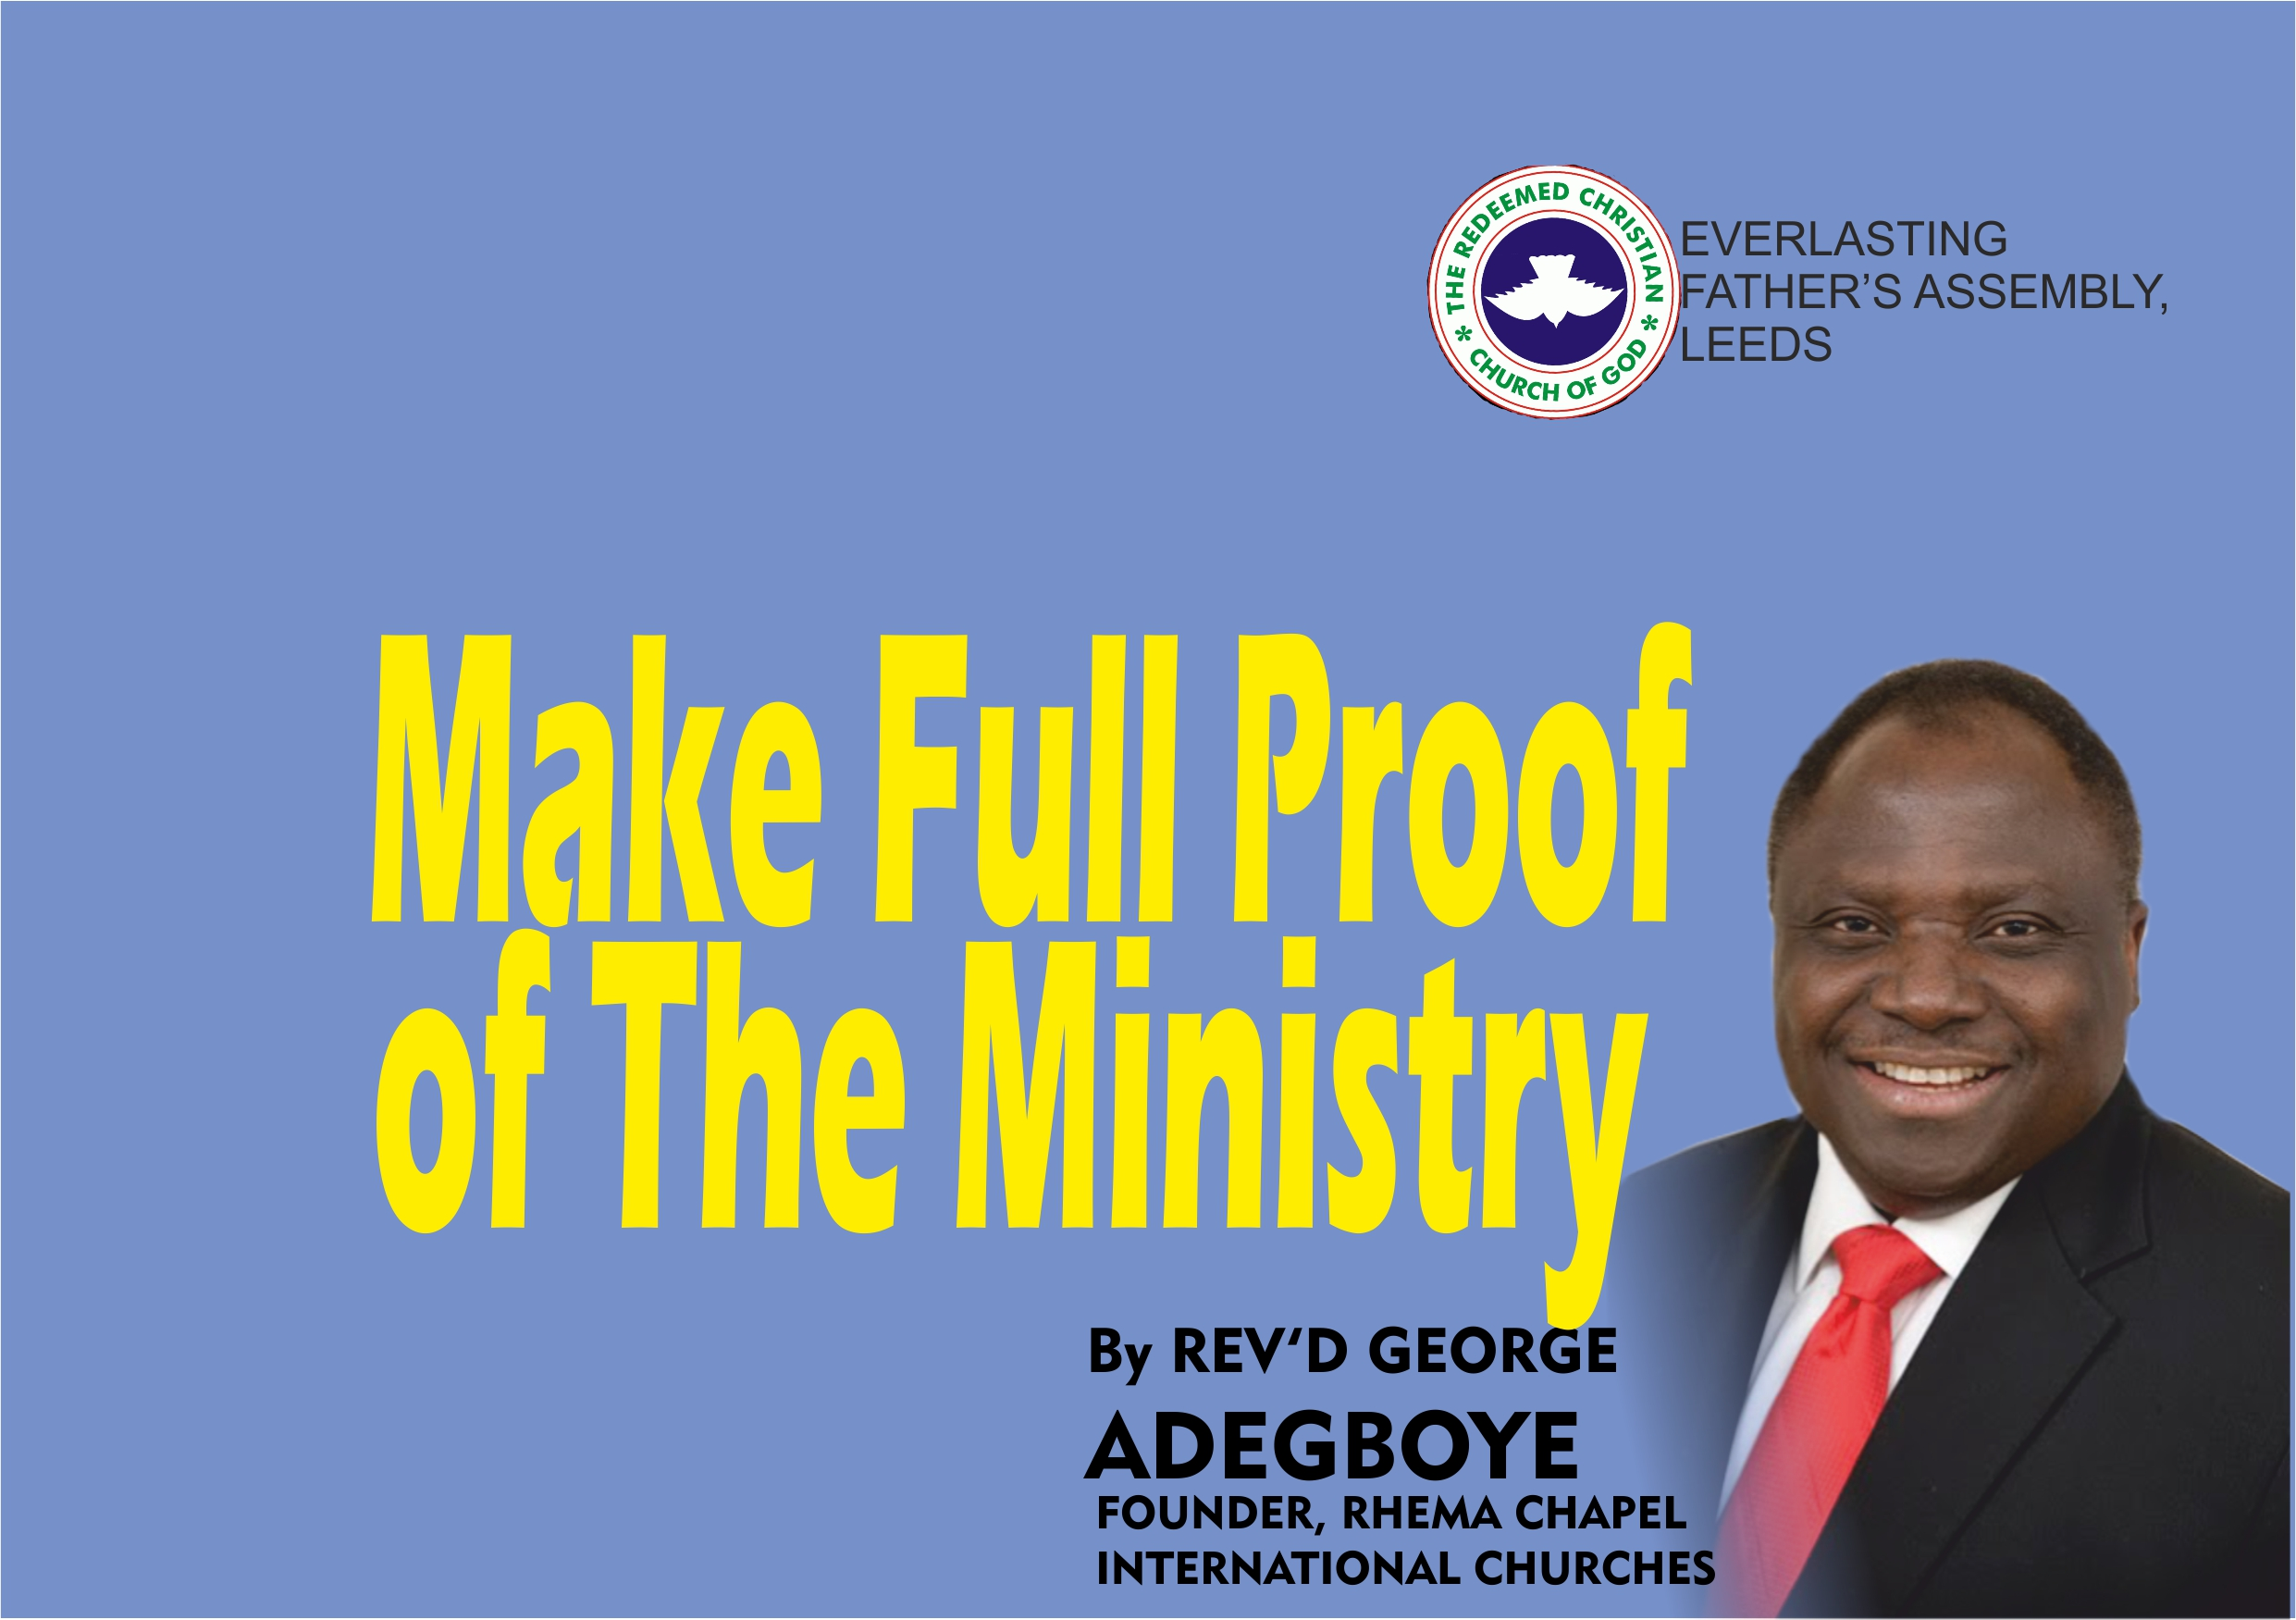 Make Full Proof Of The Ministry, by Revd George Adegboye